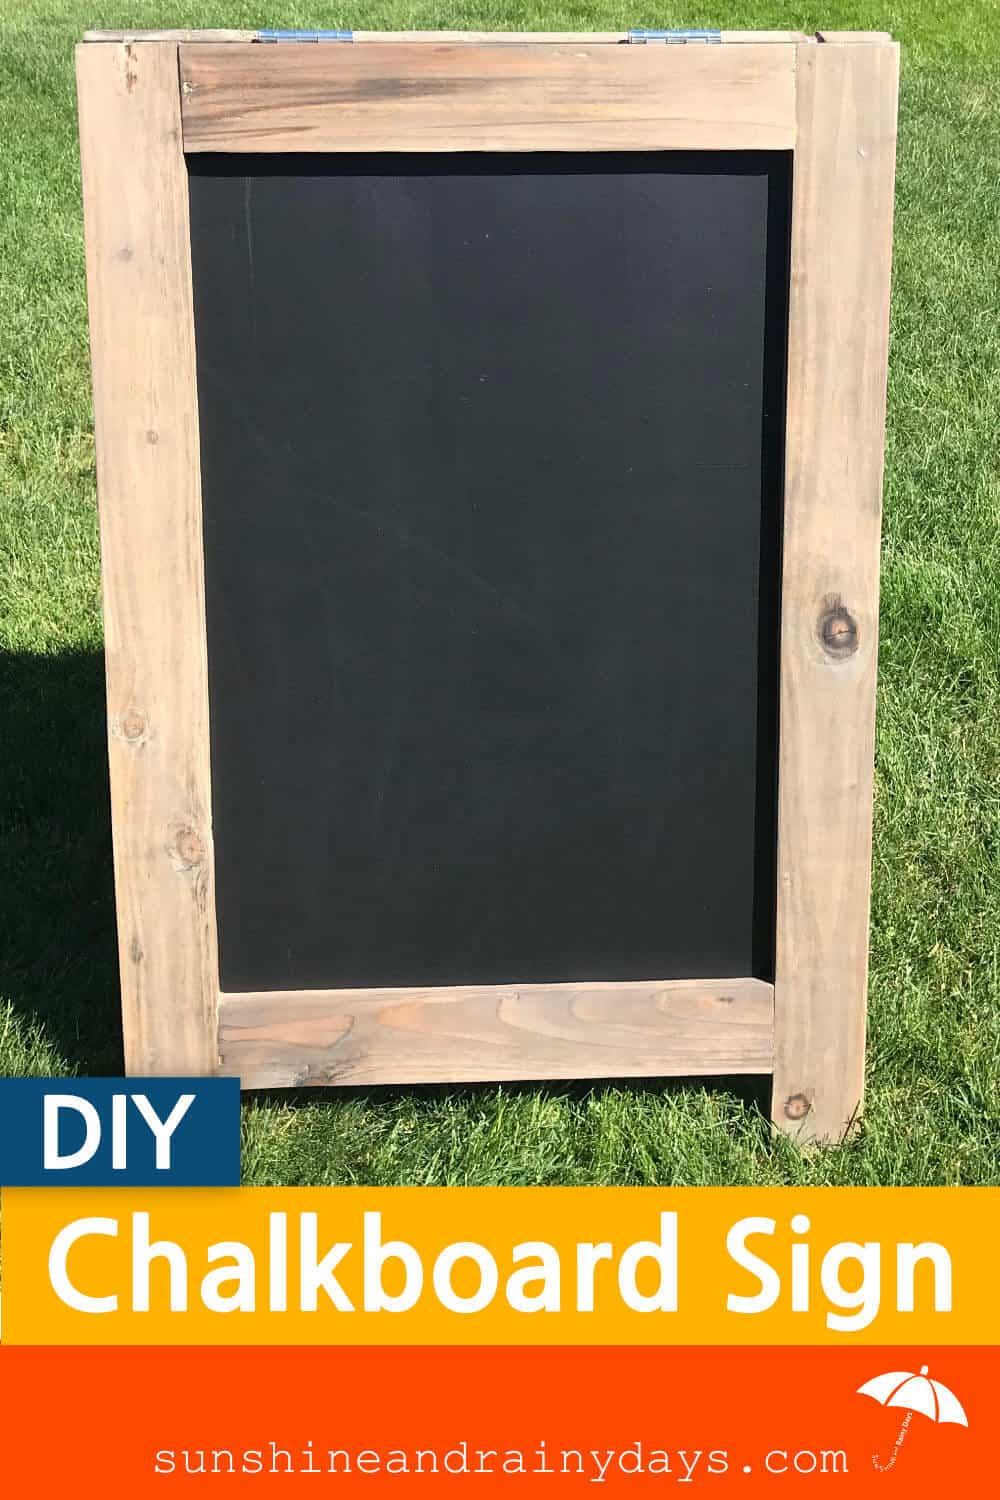 Build your own DIY Chalkboard Sign!